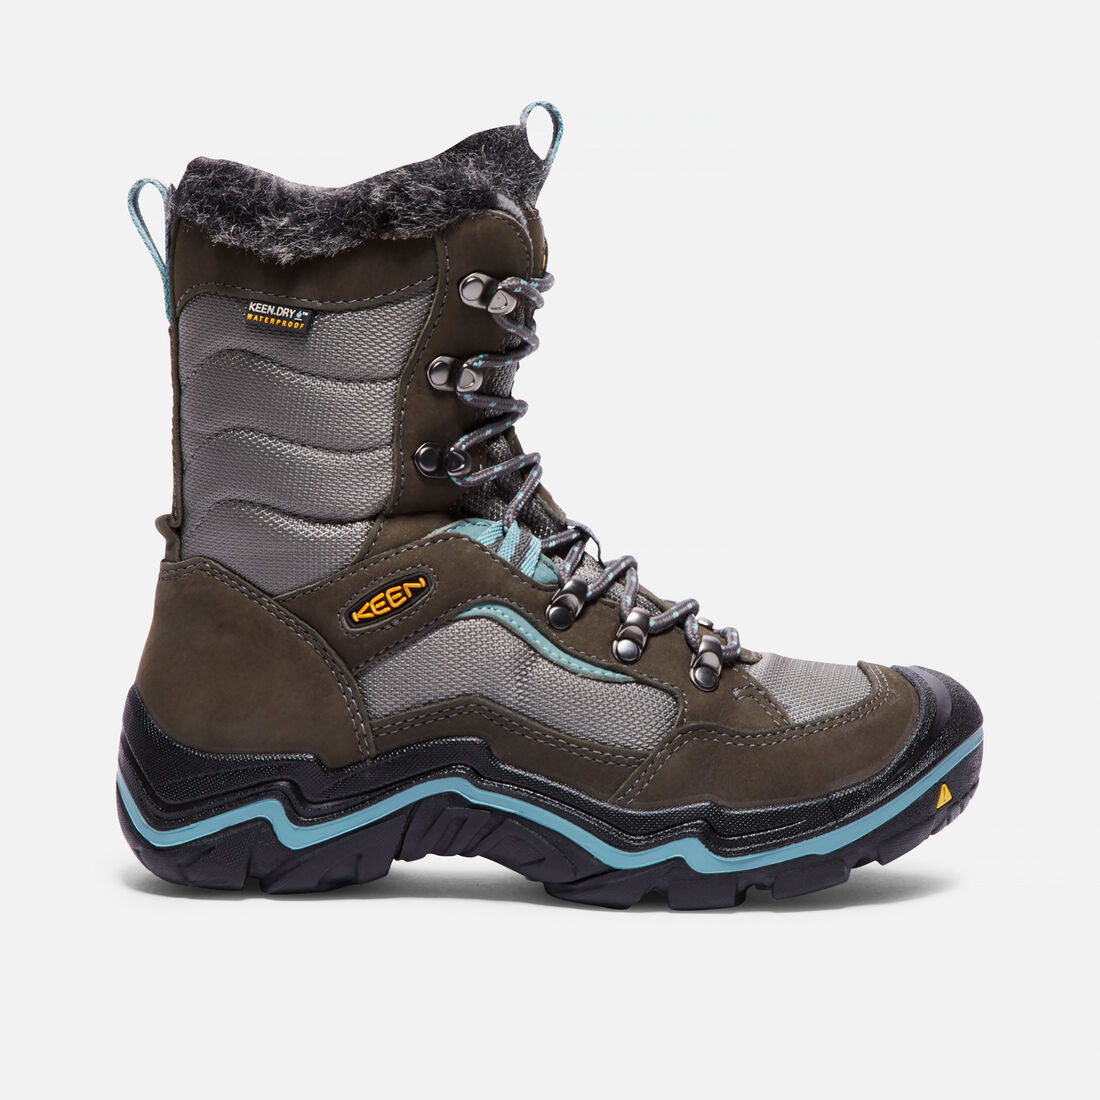 a71696d2fe1 Women s Durand Polar Waterproof Boot in Magnet Mineral Blue - large view.